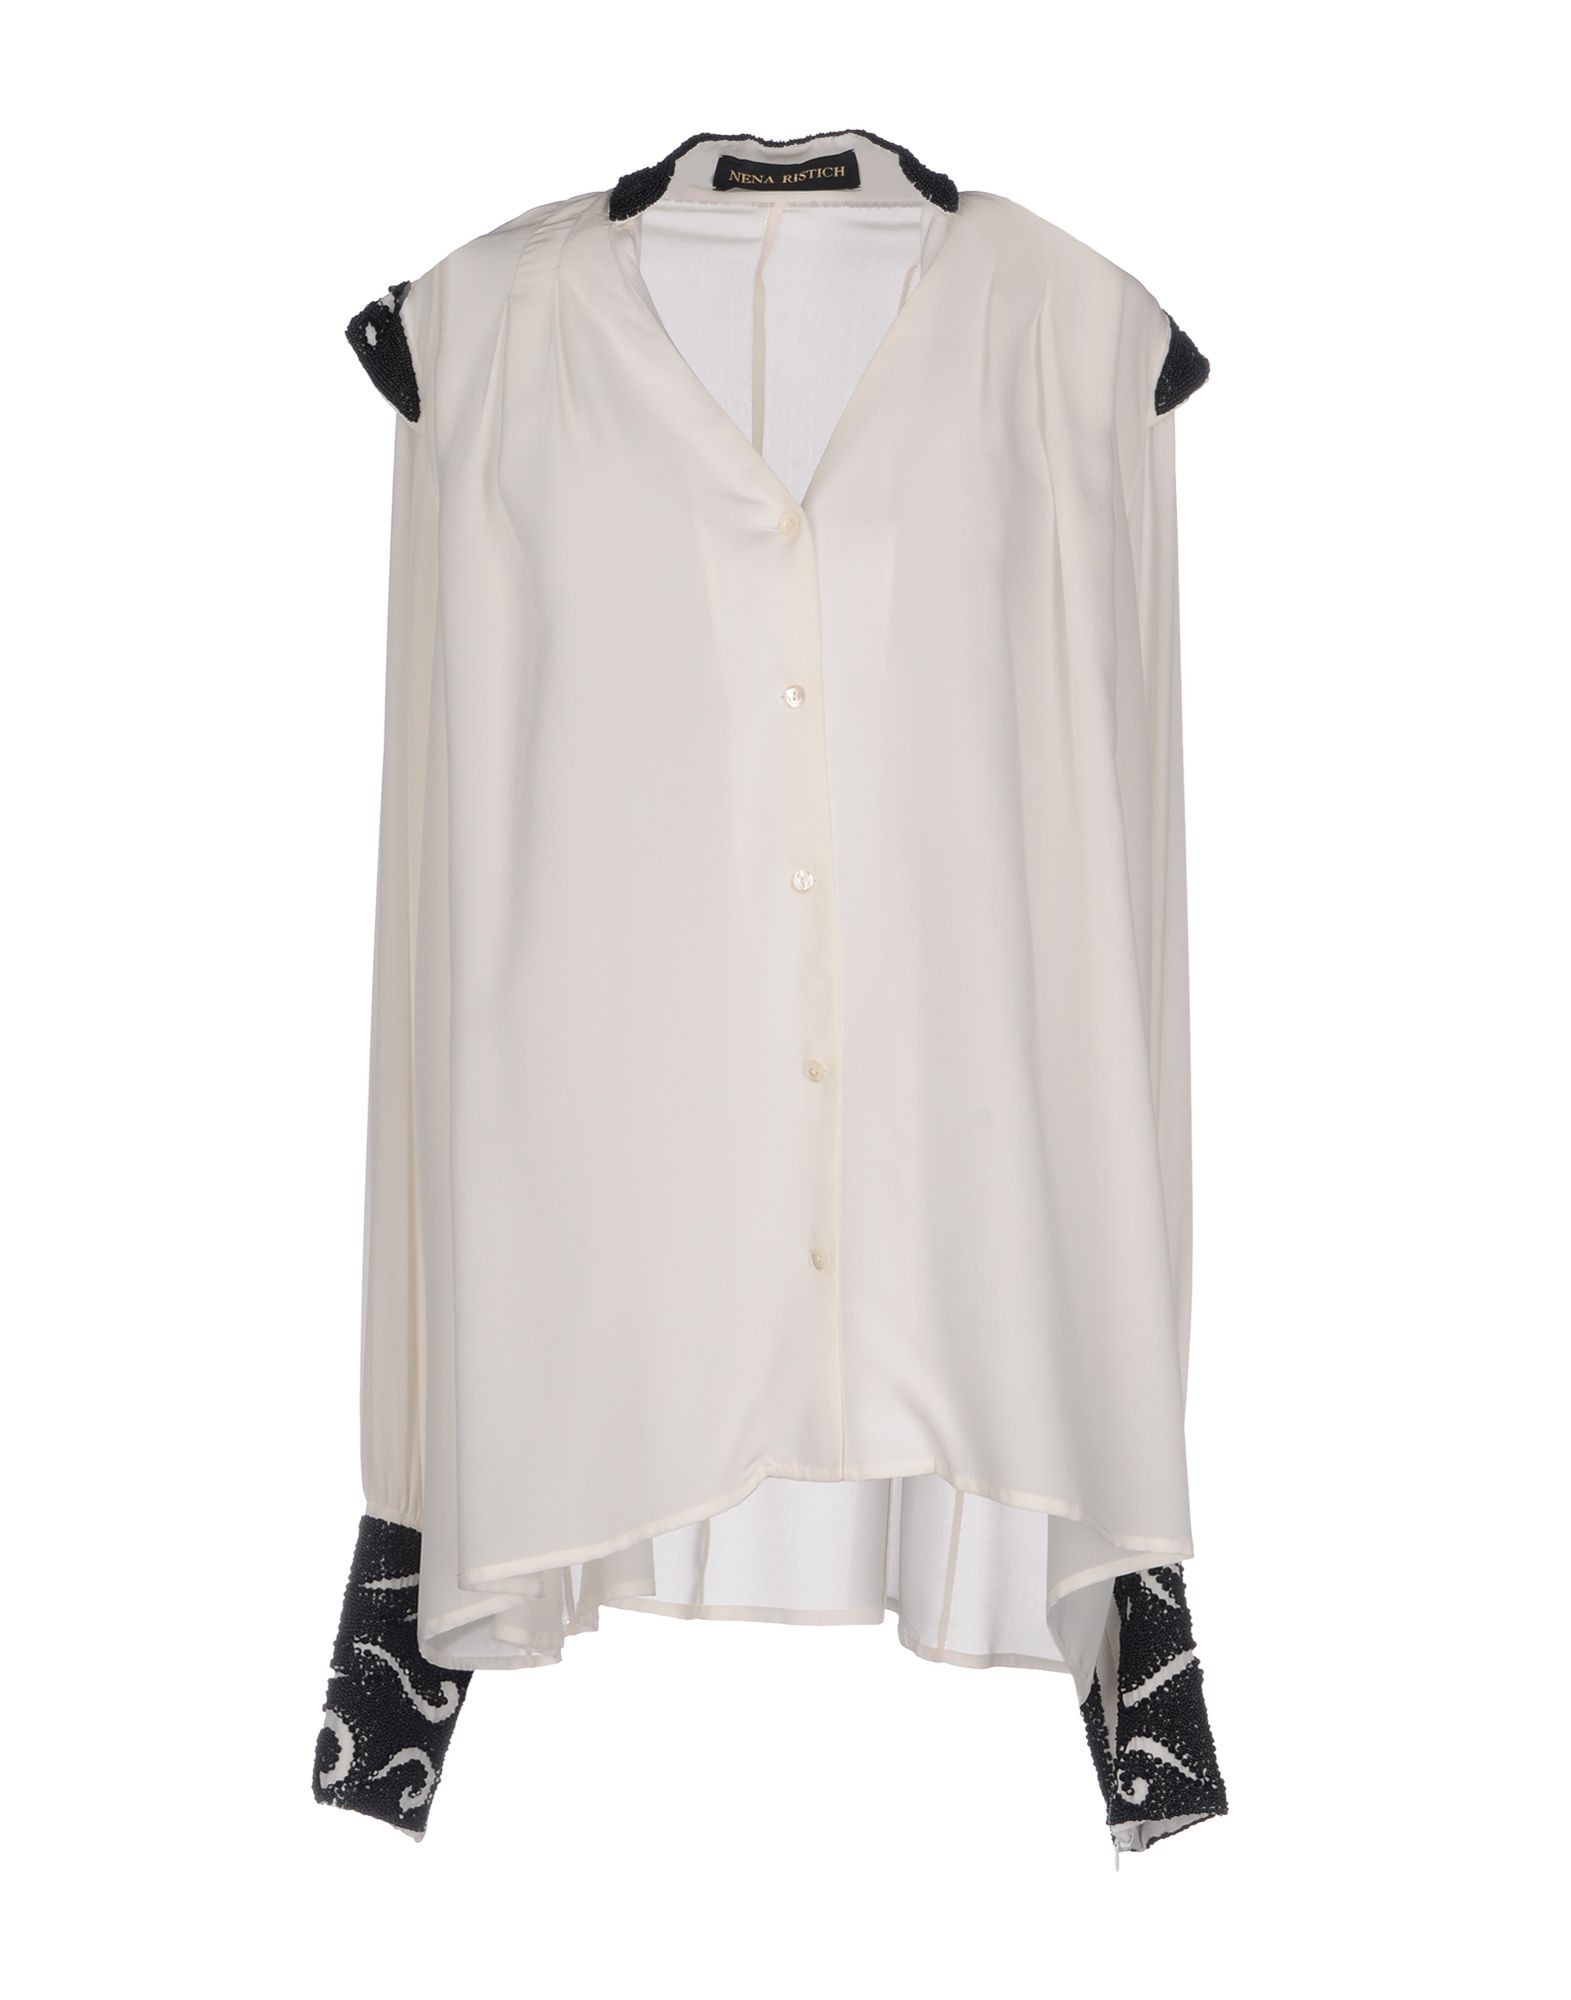 NENA RISTICH Silk Shirts & Blouses in White